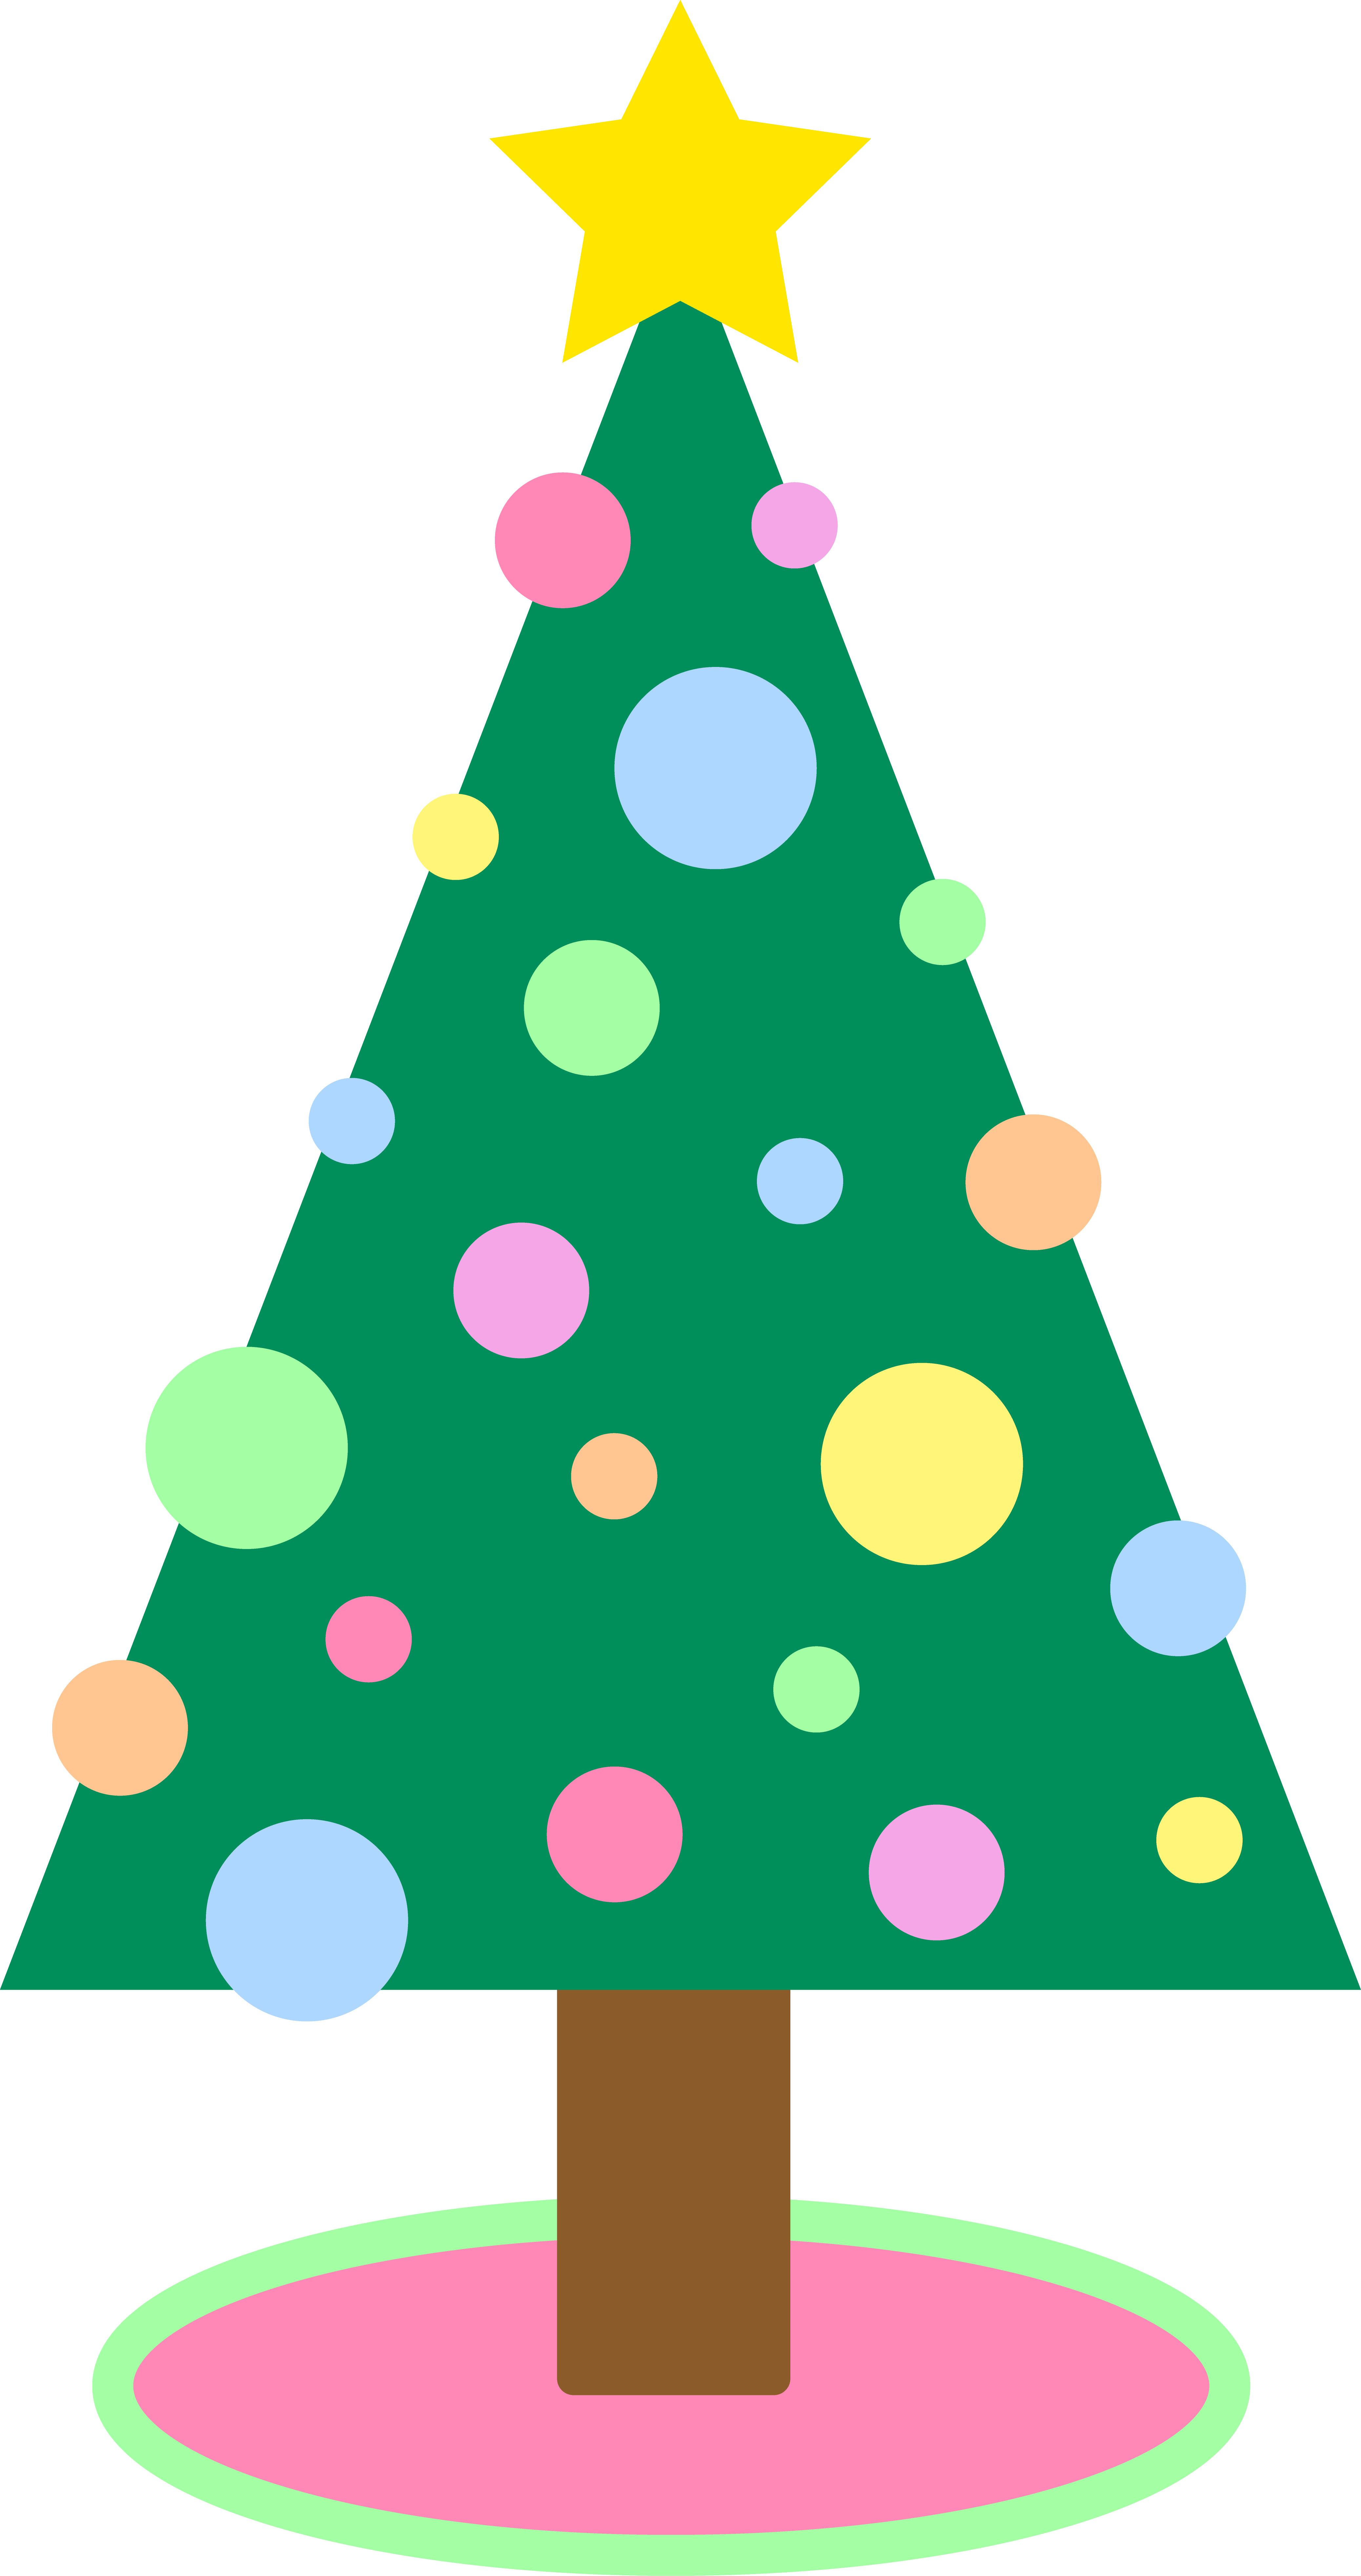 Pastel clipart colorful star Download to Tree Christmas PDClipart